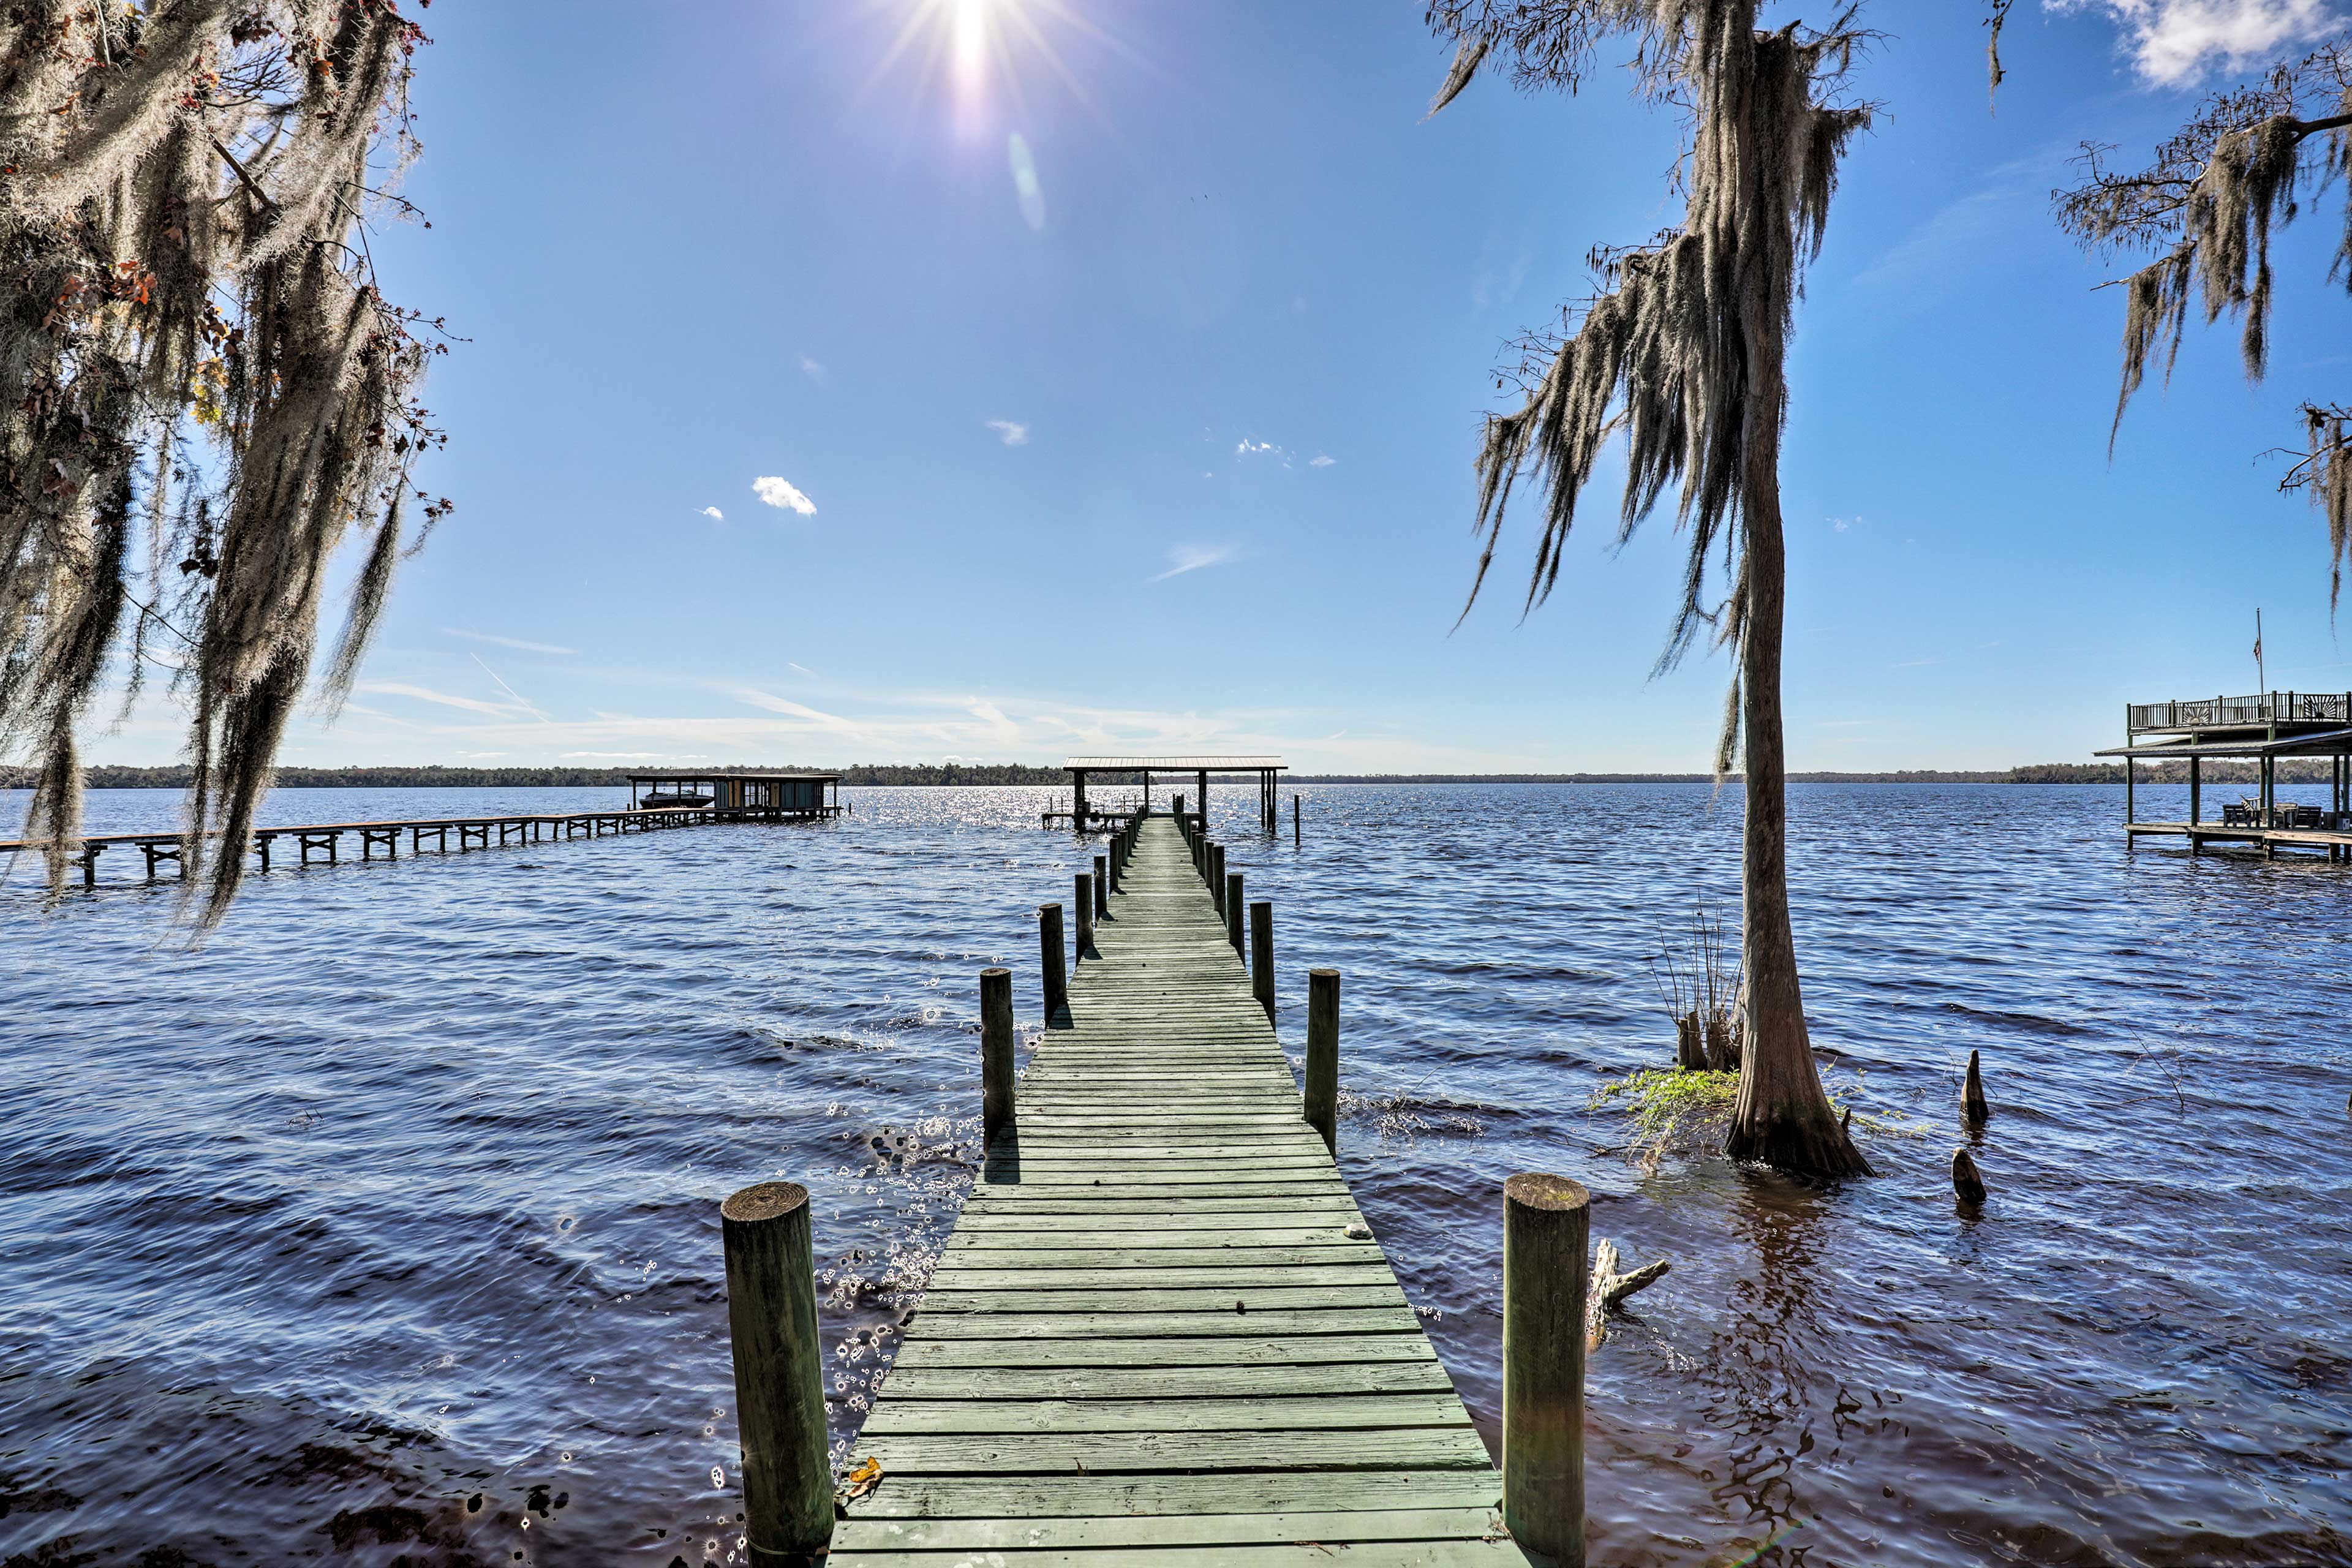 Enjoy access a private boat dock - the perfect spot to fish for bass!